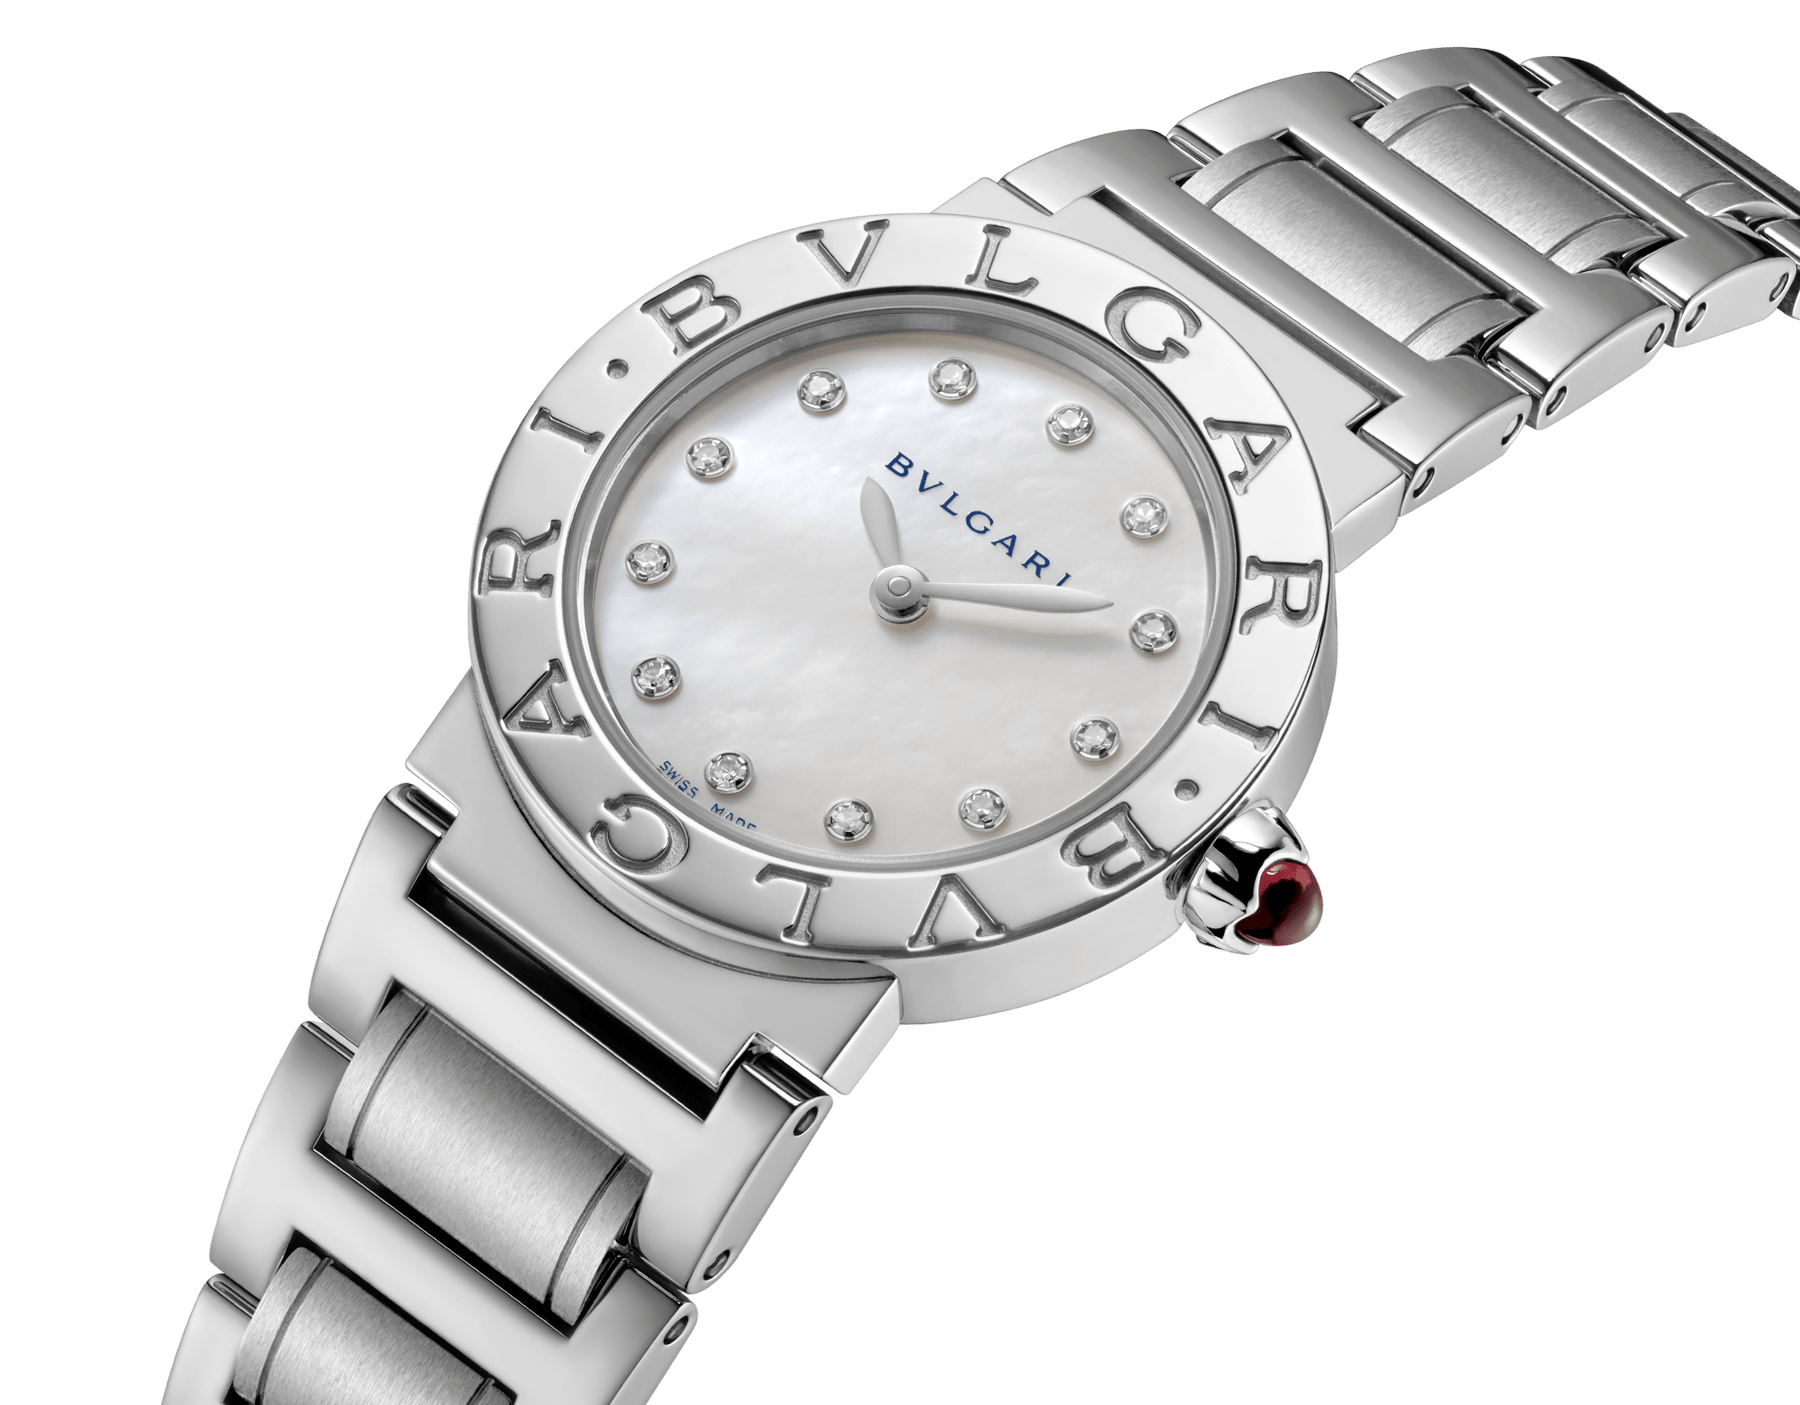 BVLGARI BVLGARI watch in stainless steel case and bracelet, with white mother-of-pearl dial and diamond indexes. Small model 101886 image 2